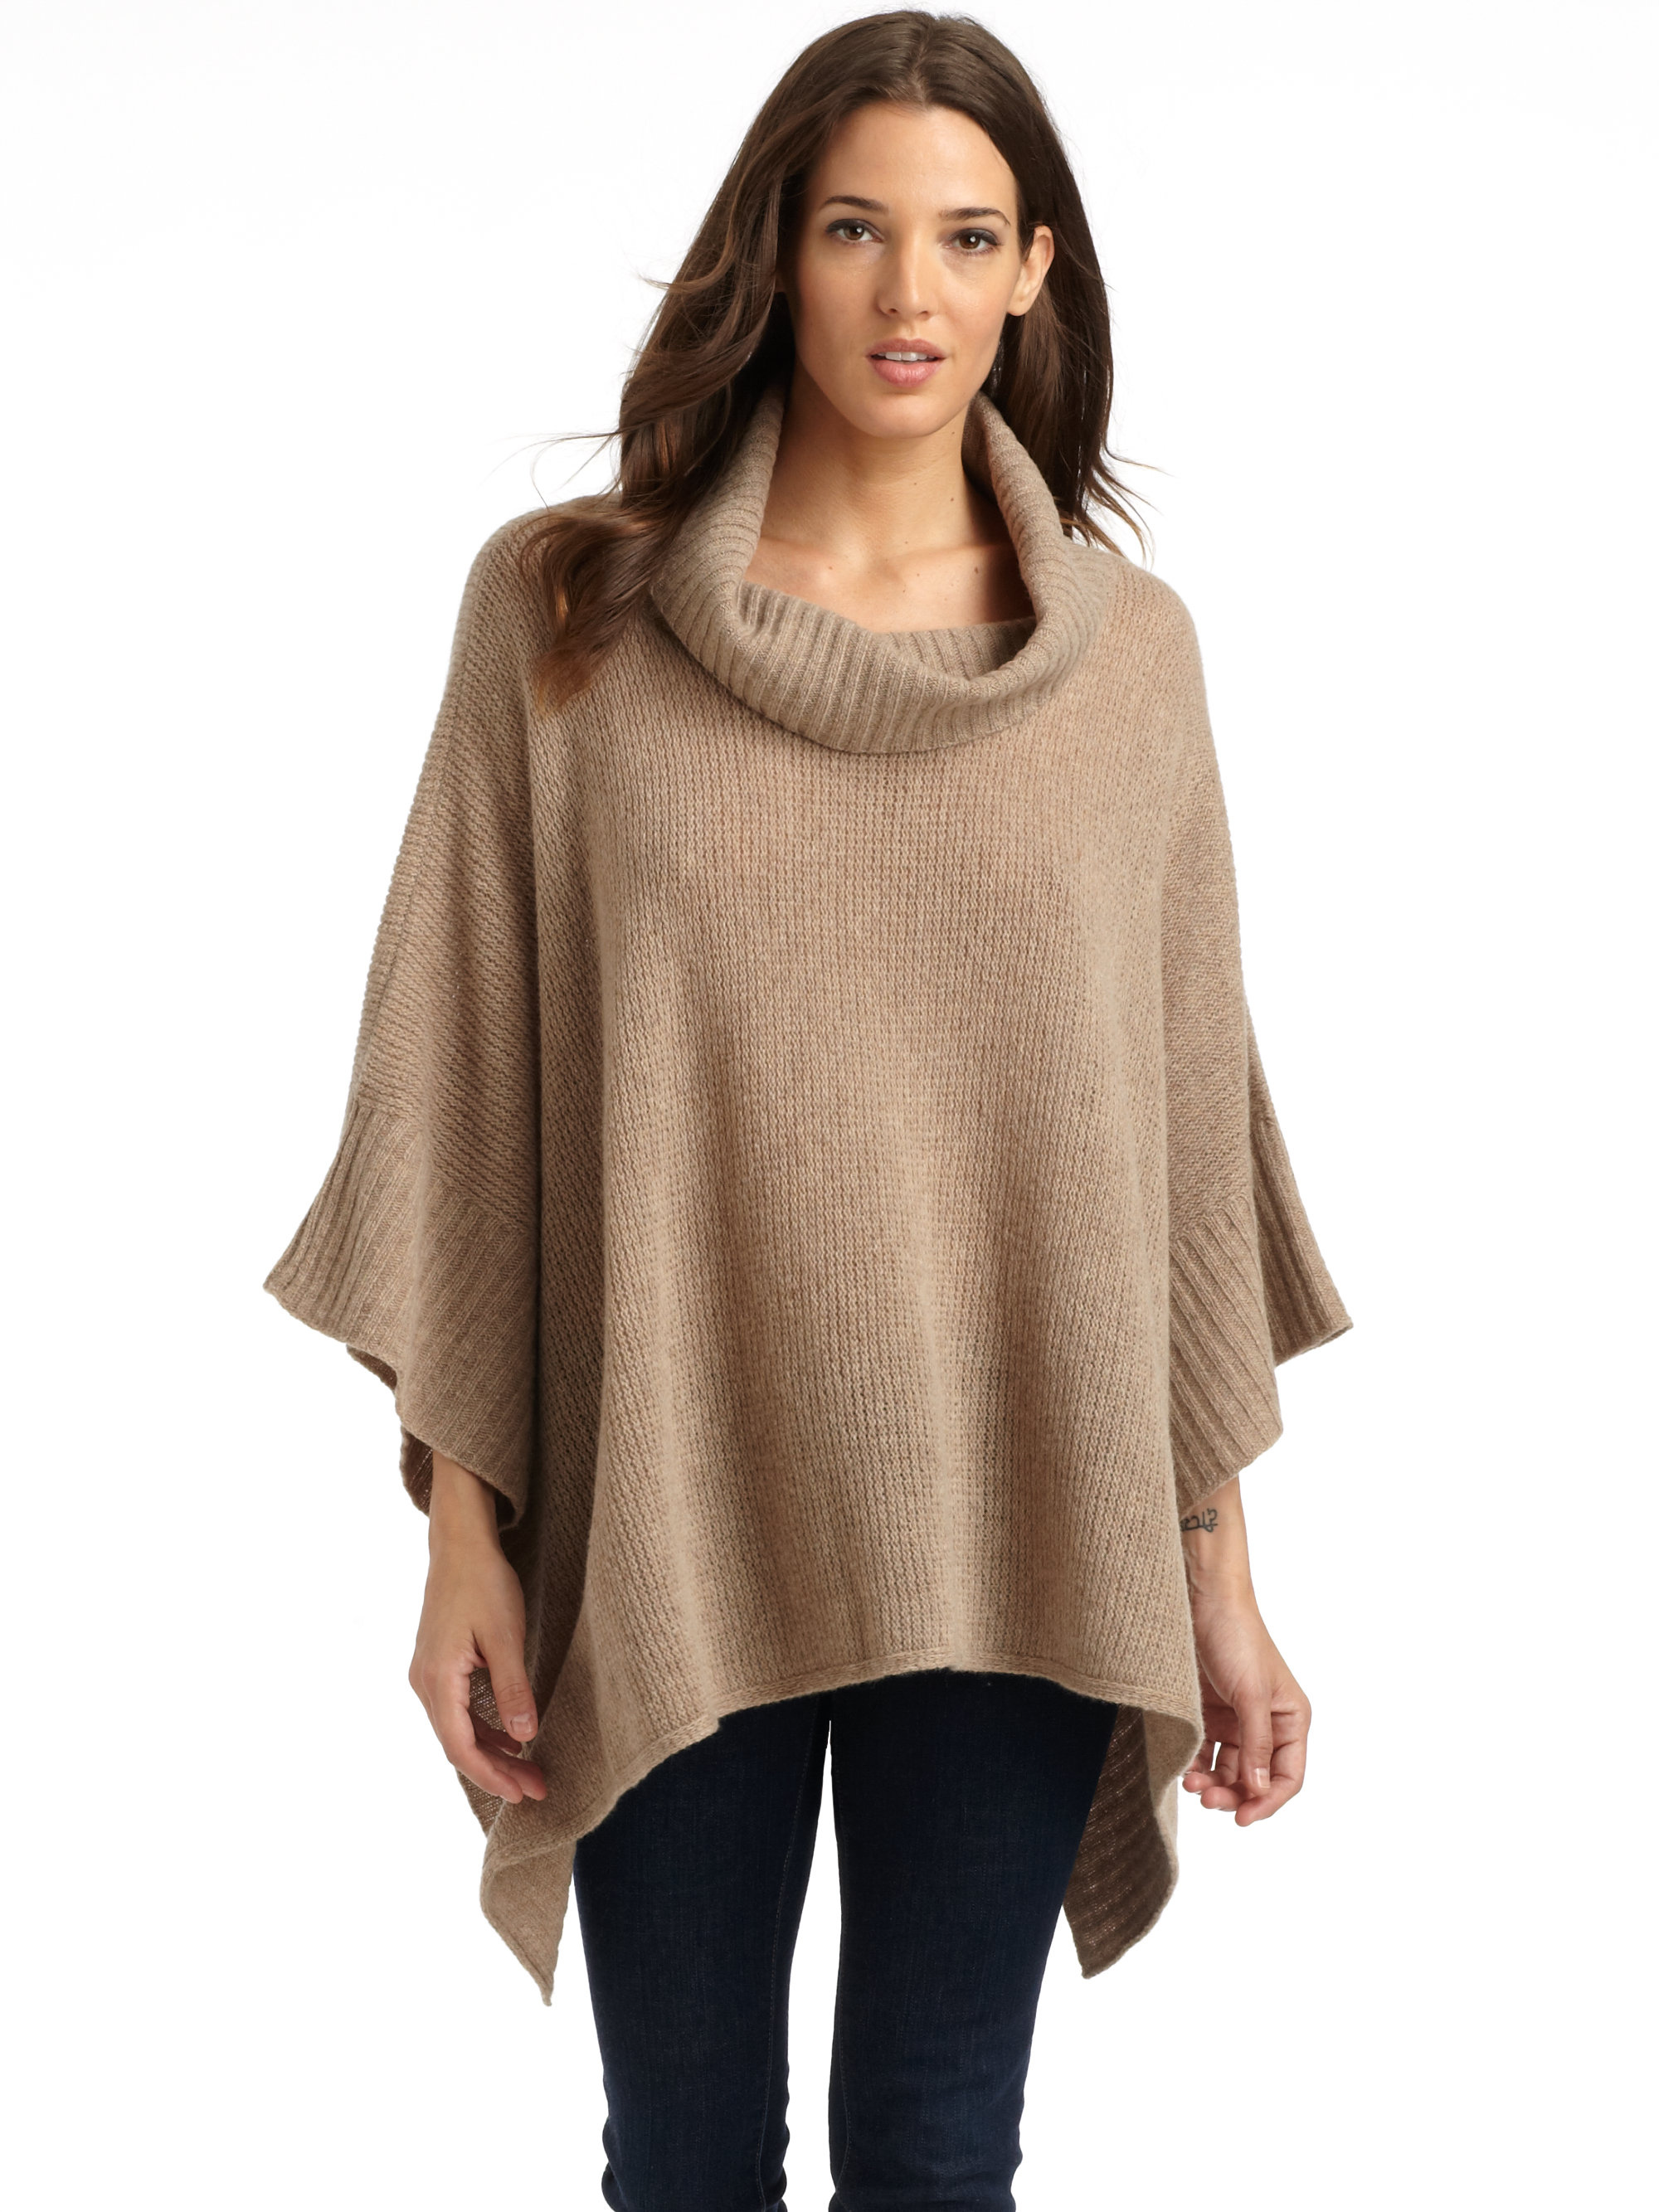 Knitting Pattern Poncho Sweater : Eileen fisher Wool Cashmere Knit Poncho Sweater in Natural Lyst